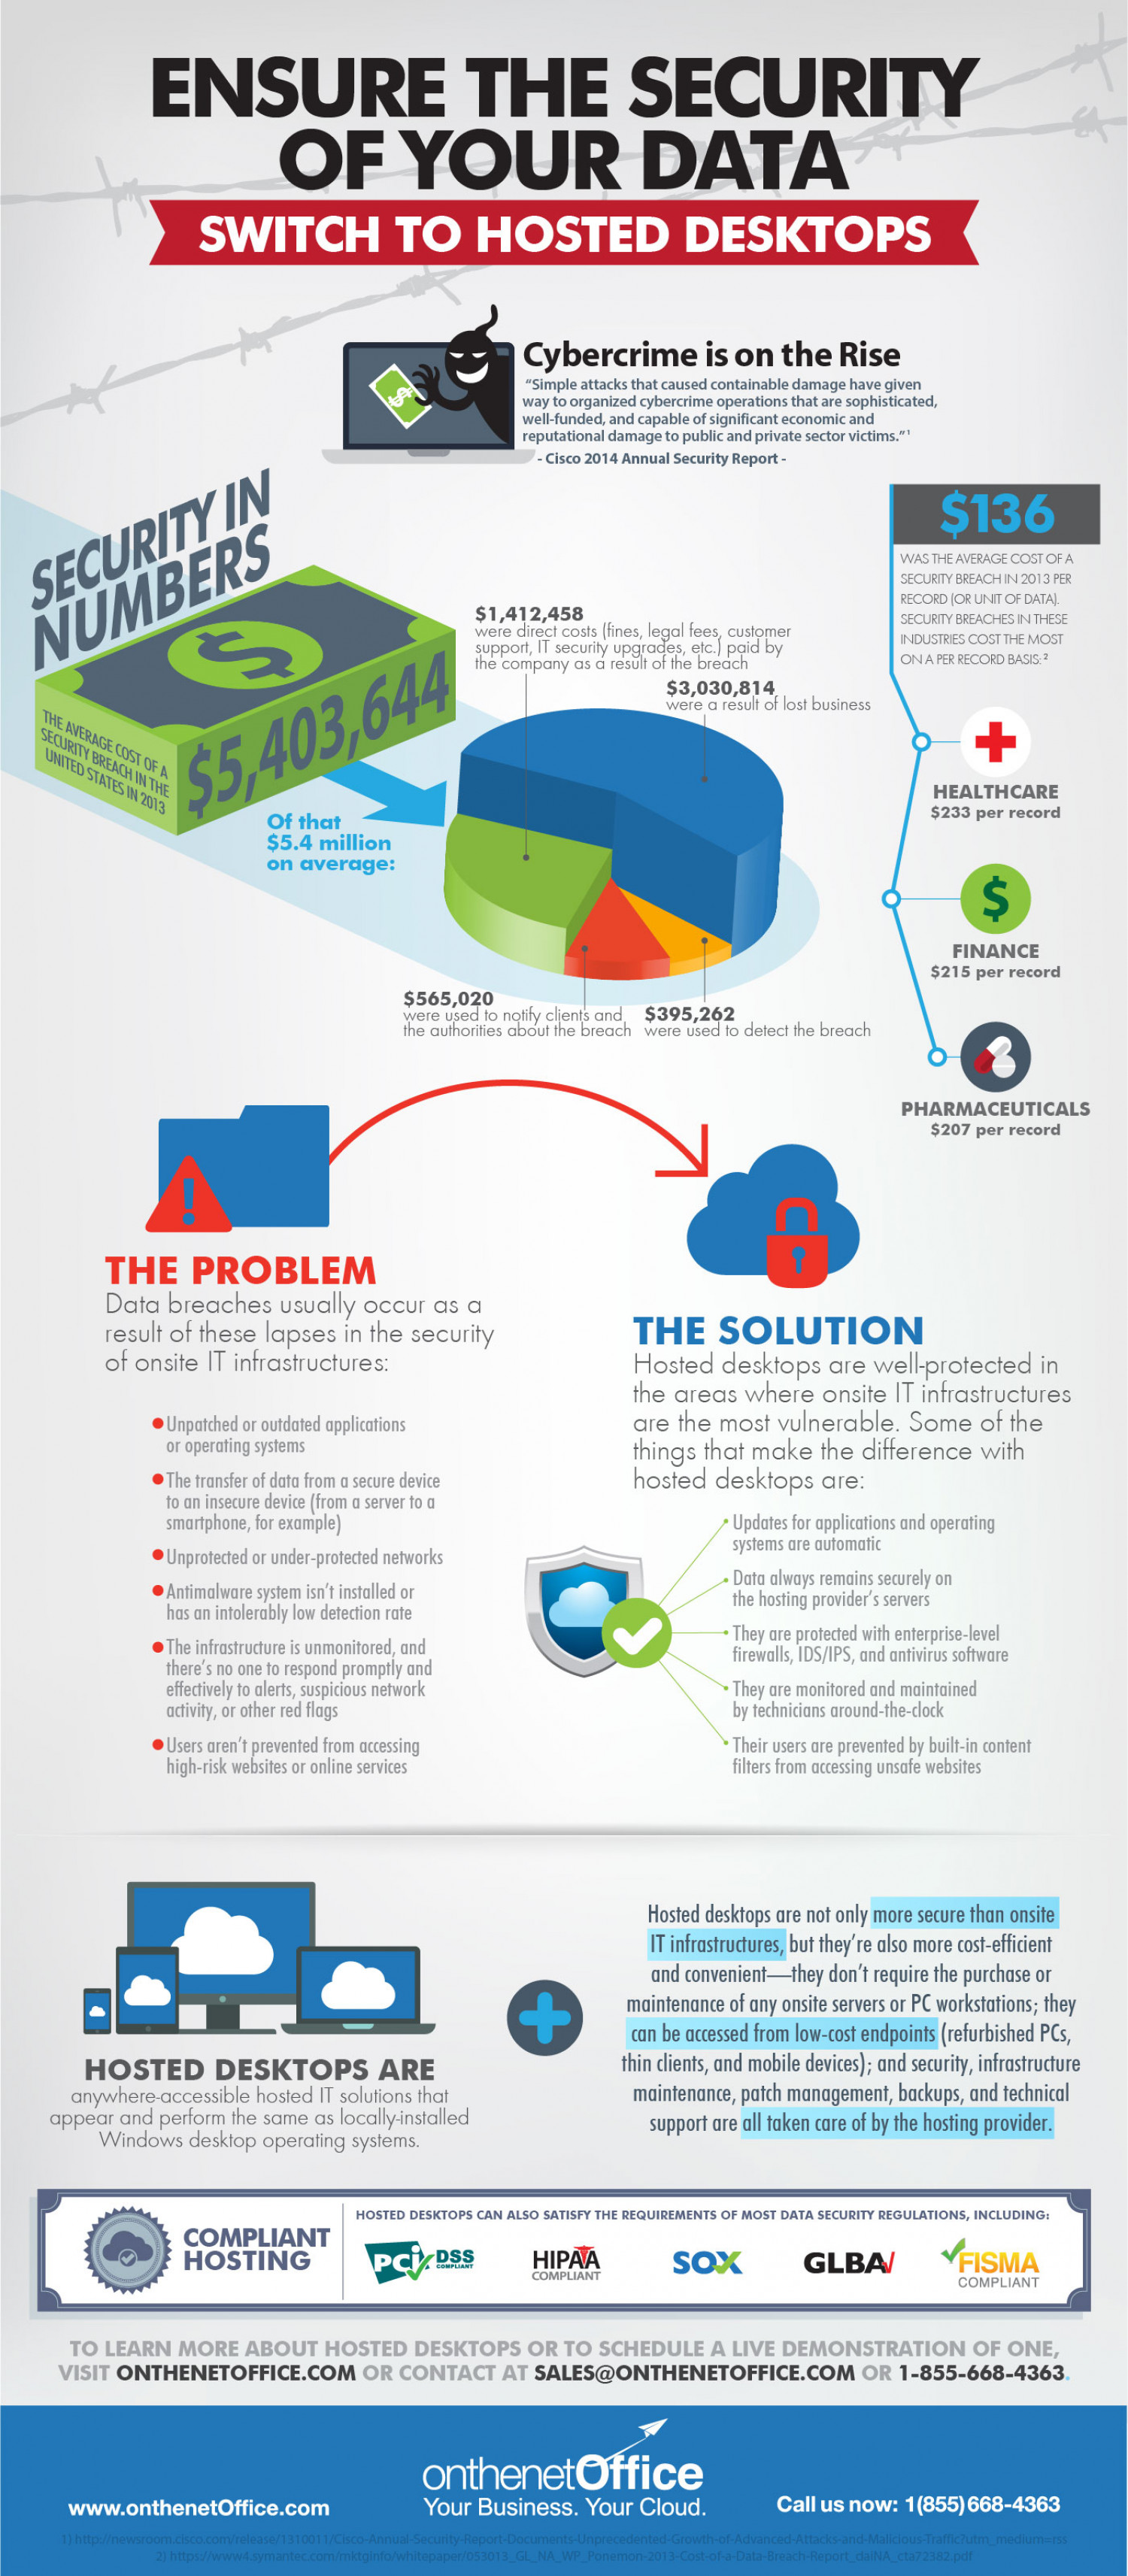 Ensure the Security of Your Data Infographic